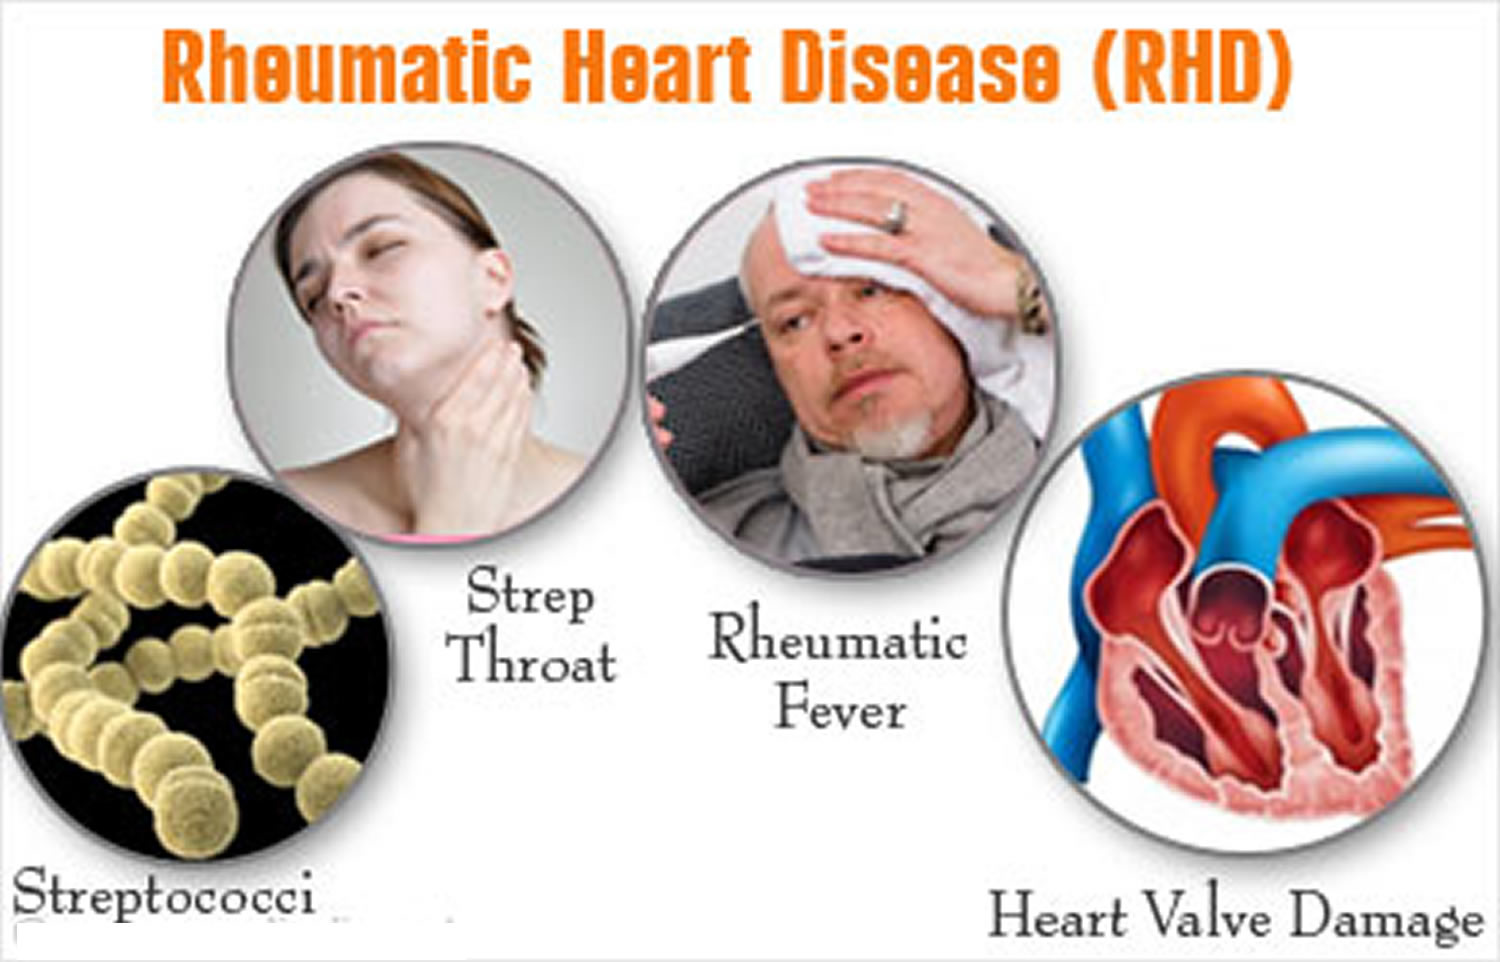 causes and symptoms of rheumatic fever Rheumatic heart disease is a common and potentially serious complication that can occur in cases of rheumatic fever in rheumatic heart disease, inflammation causes the heart's valves to become damaged and stiffened, disrupting the normal flow of blood through the heart.